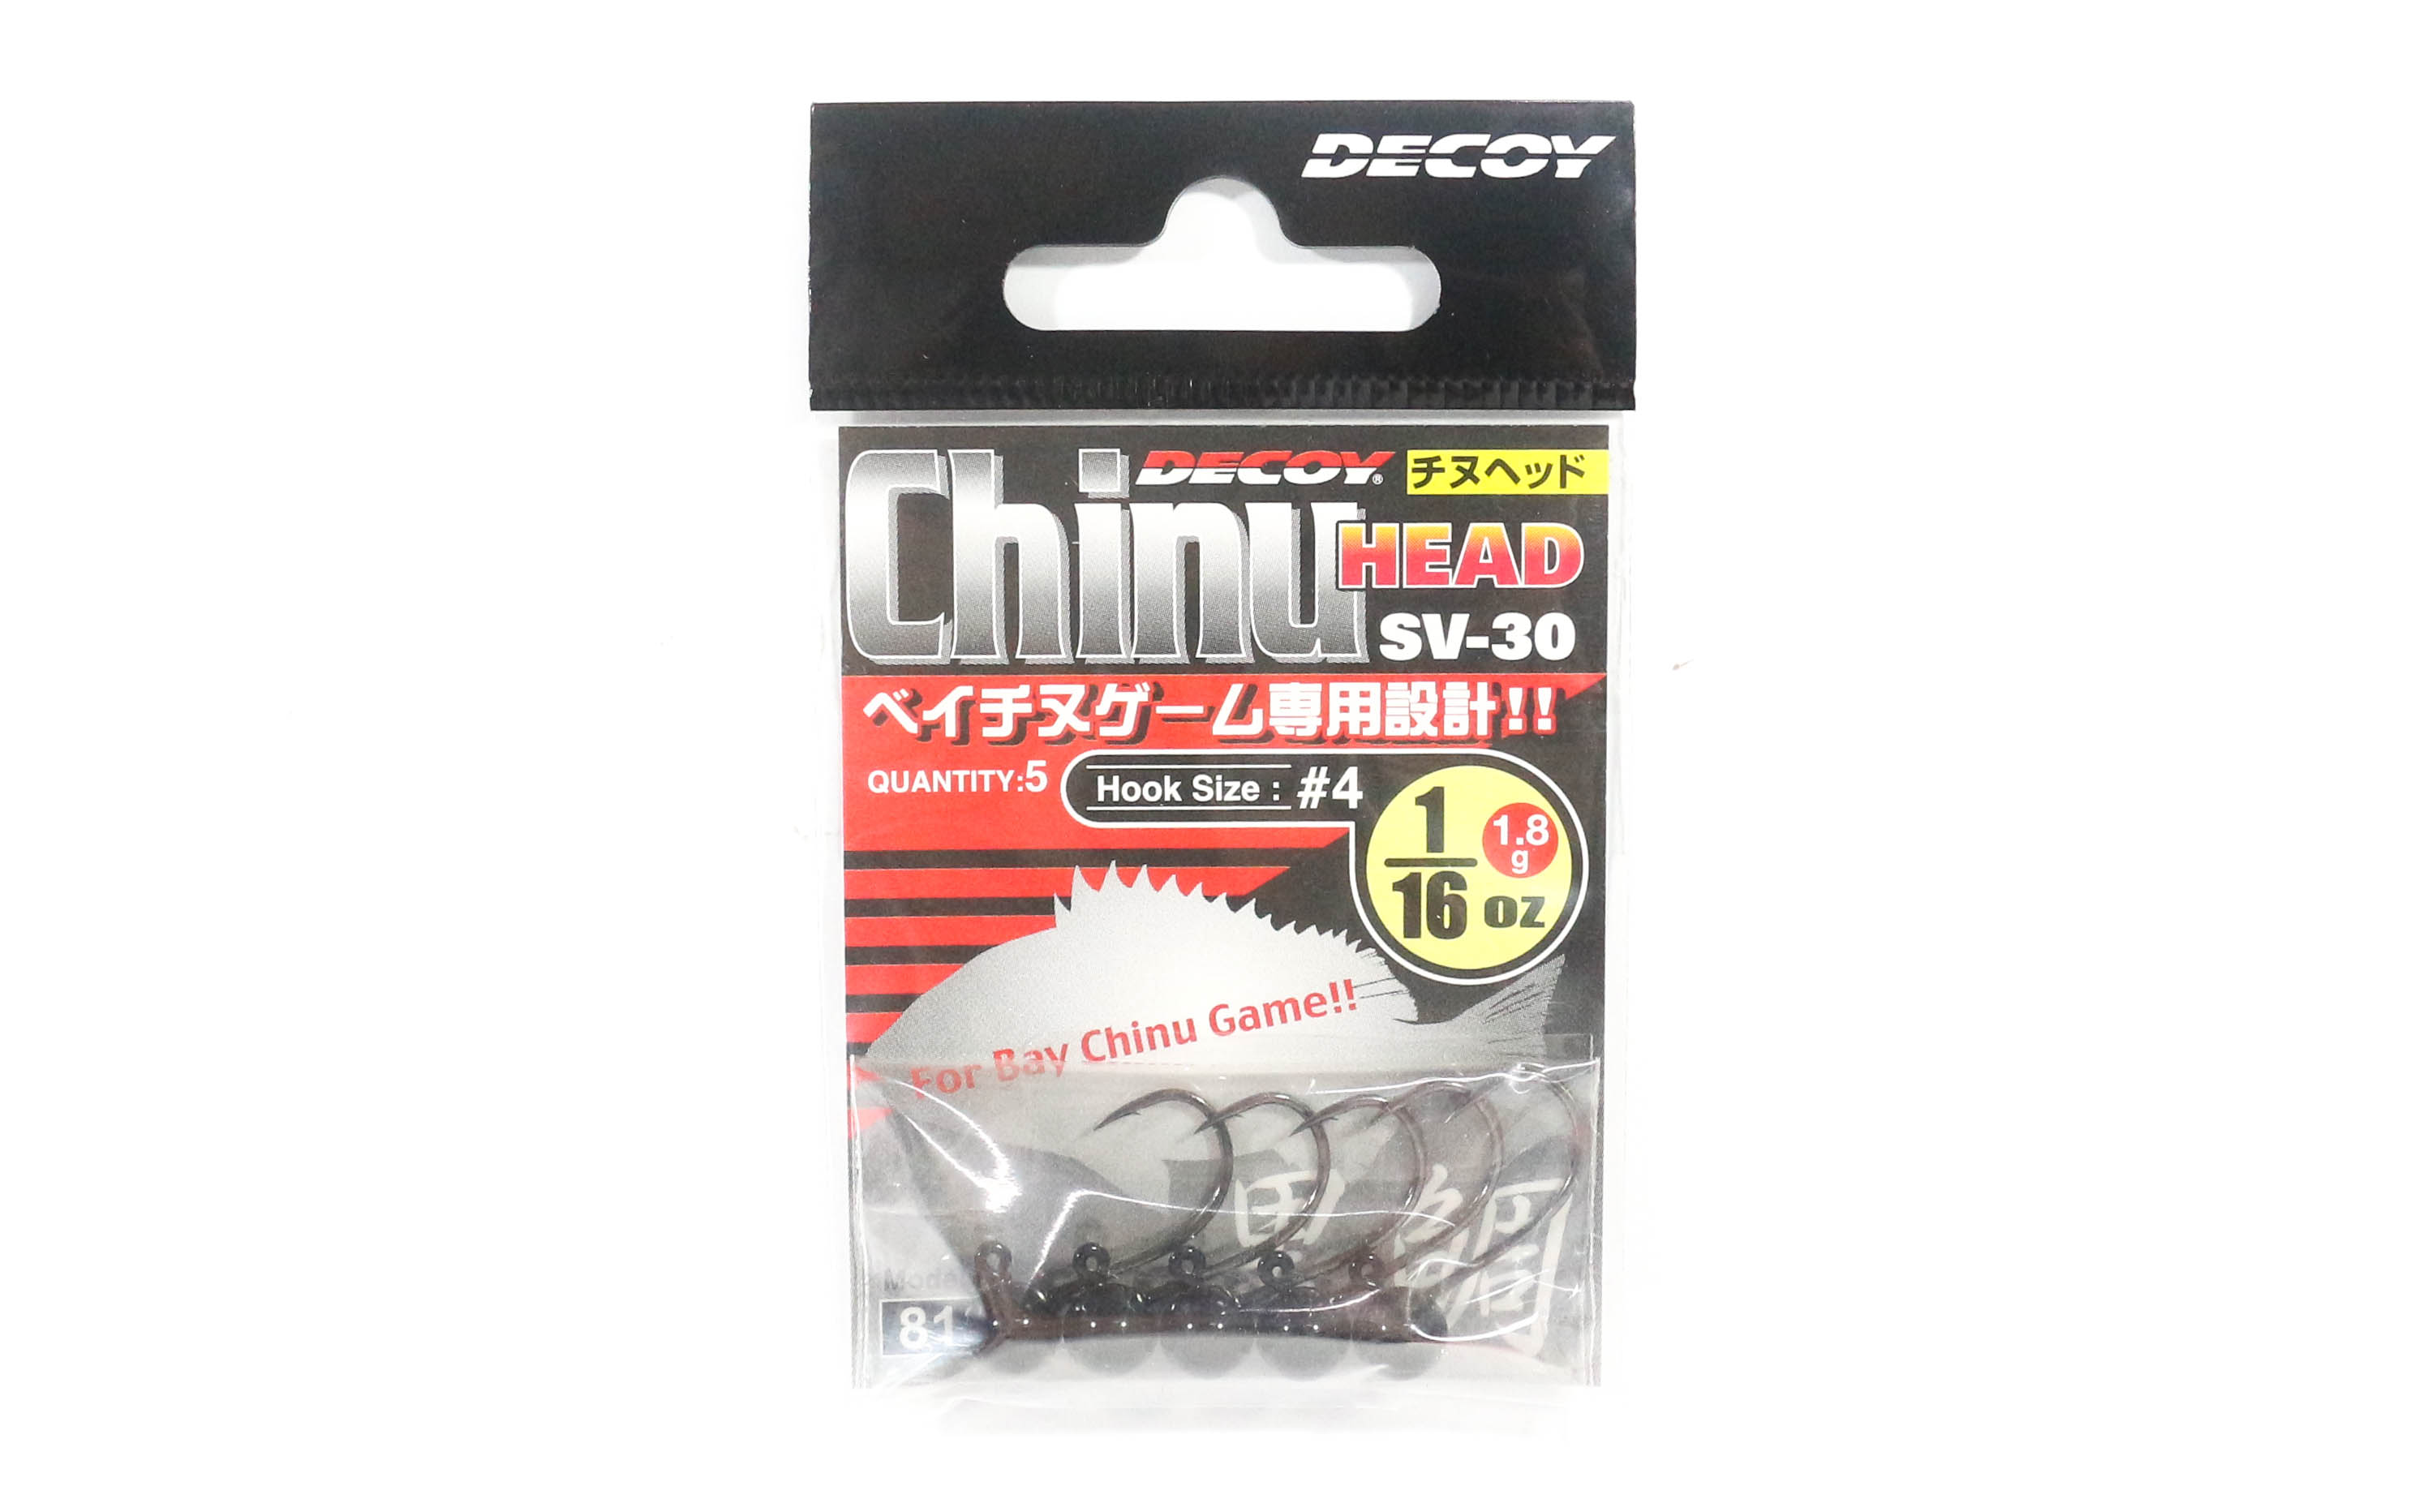 Decoy SV-30 Jig Head Chinu Head Heavy Duty Hook Size 4 , 1/16 oz (3362)